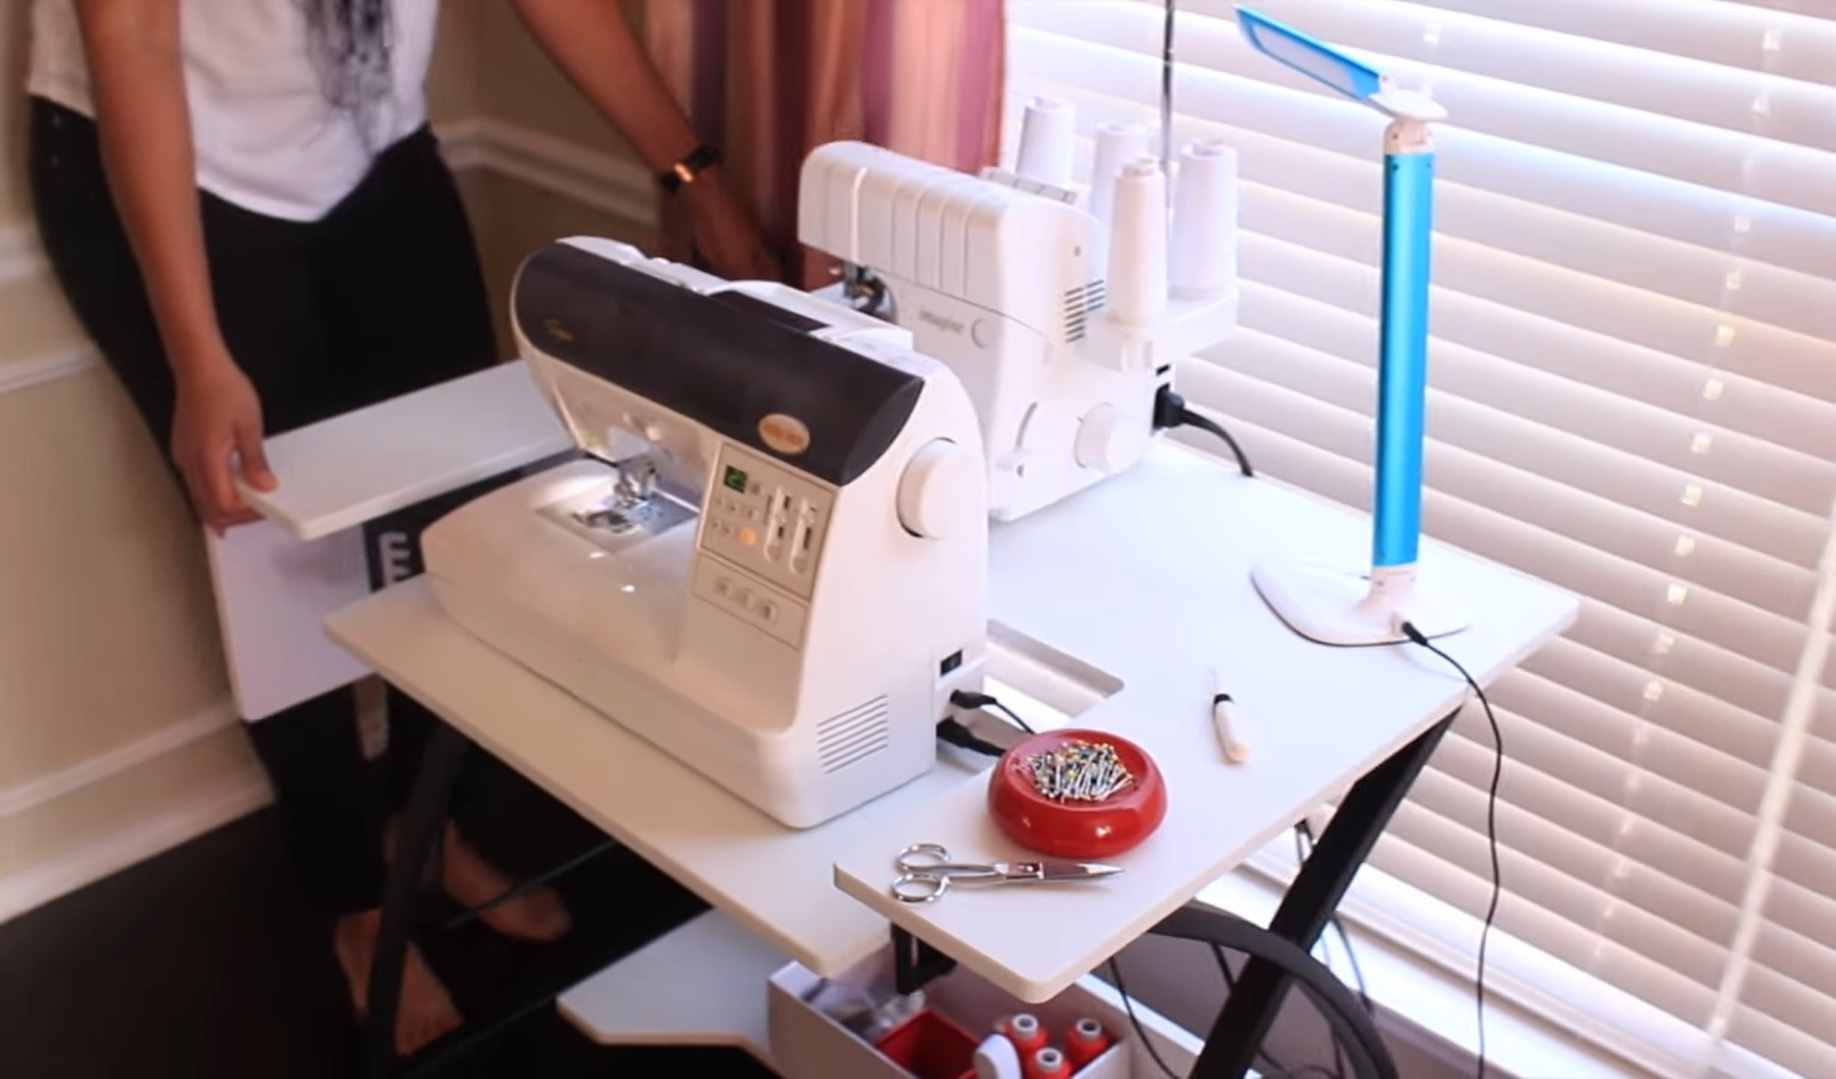 Precaution when setting up sewing table